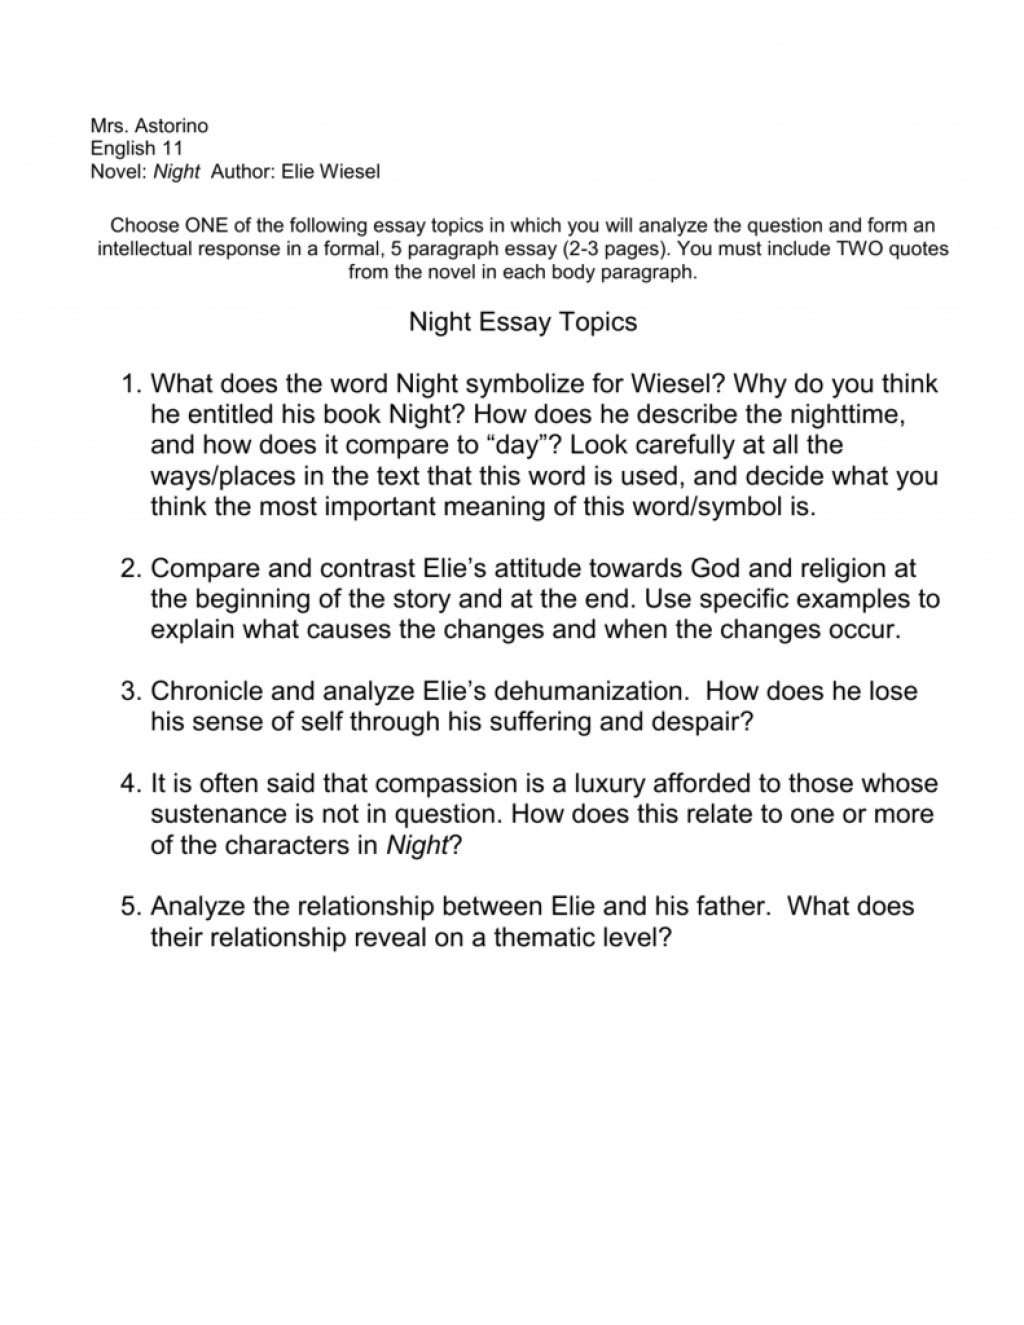 007 008045703 1 Religion Essay Topics Dreaded Argumentative Easy World Large